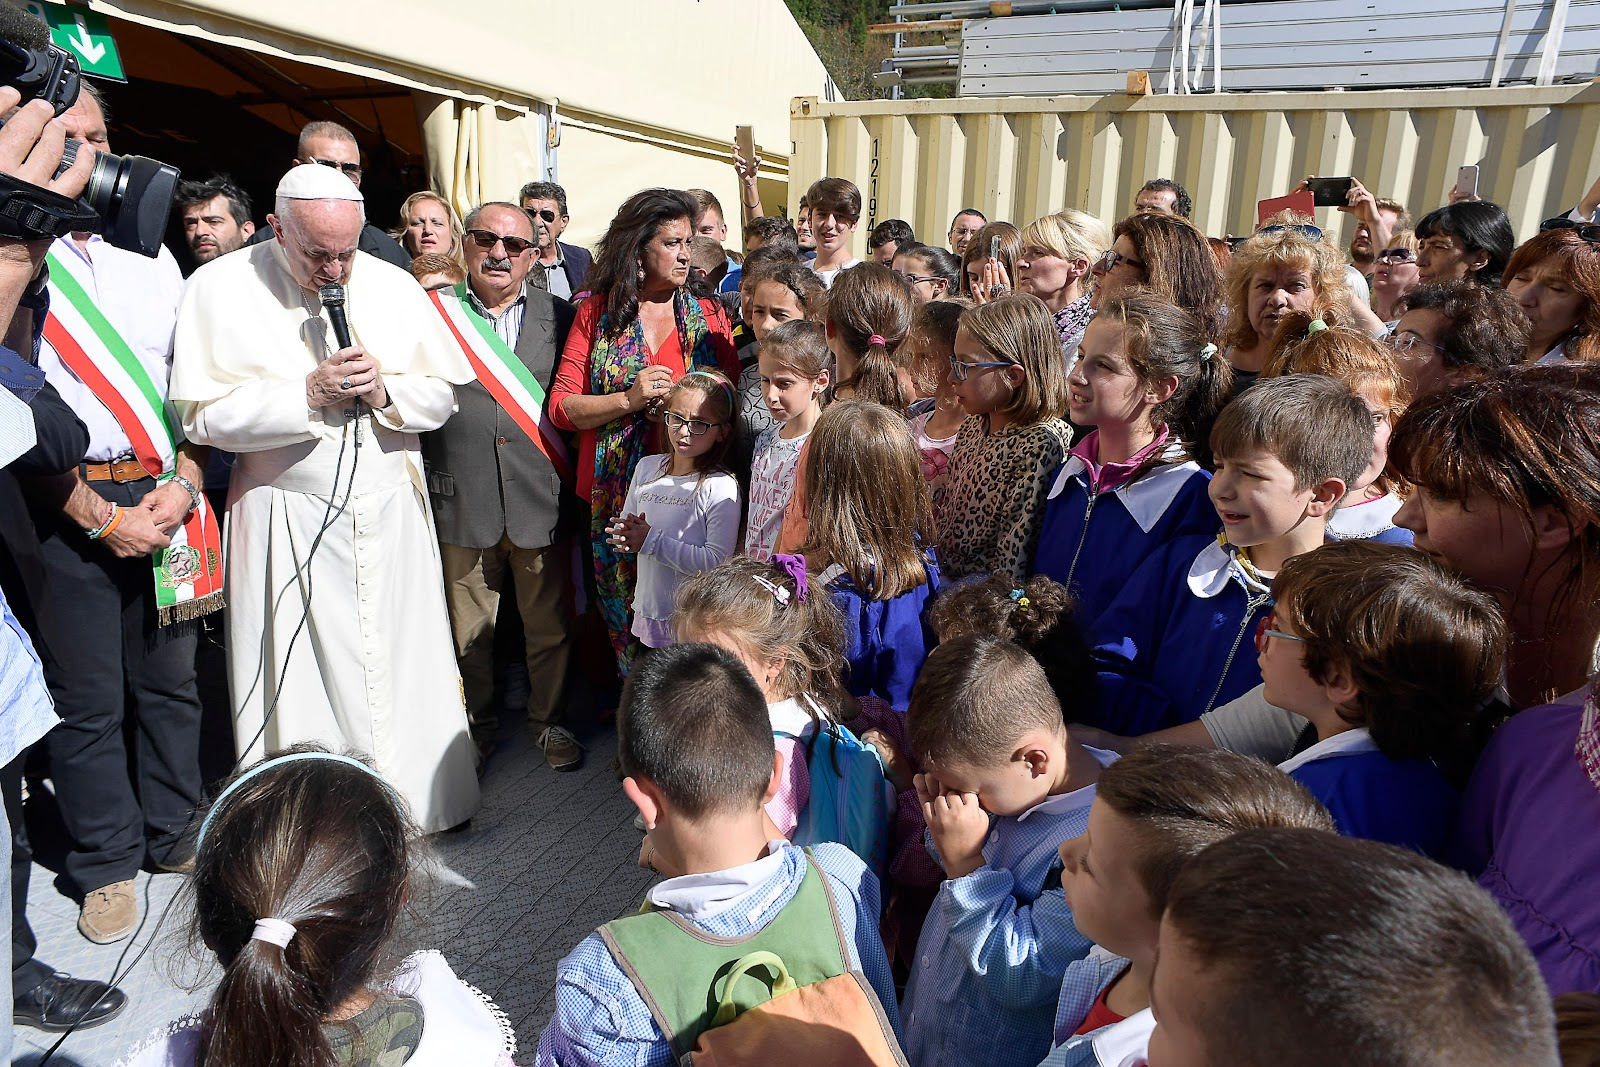 Pope Francis. Children. Earthquake Victims